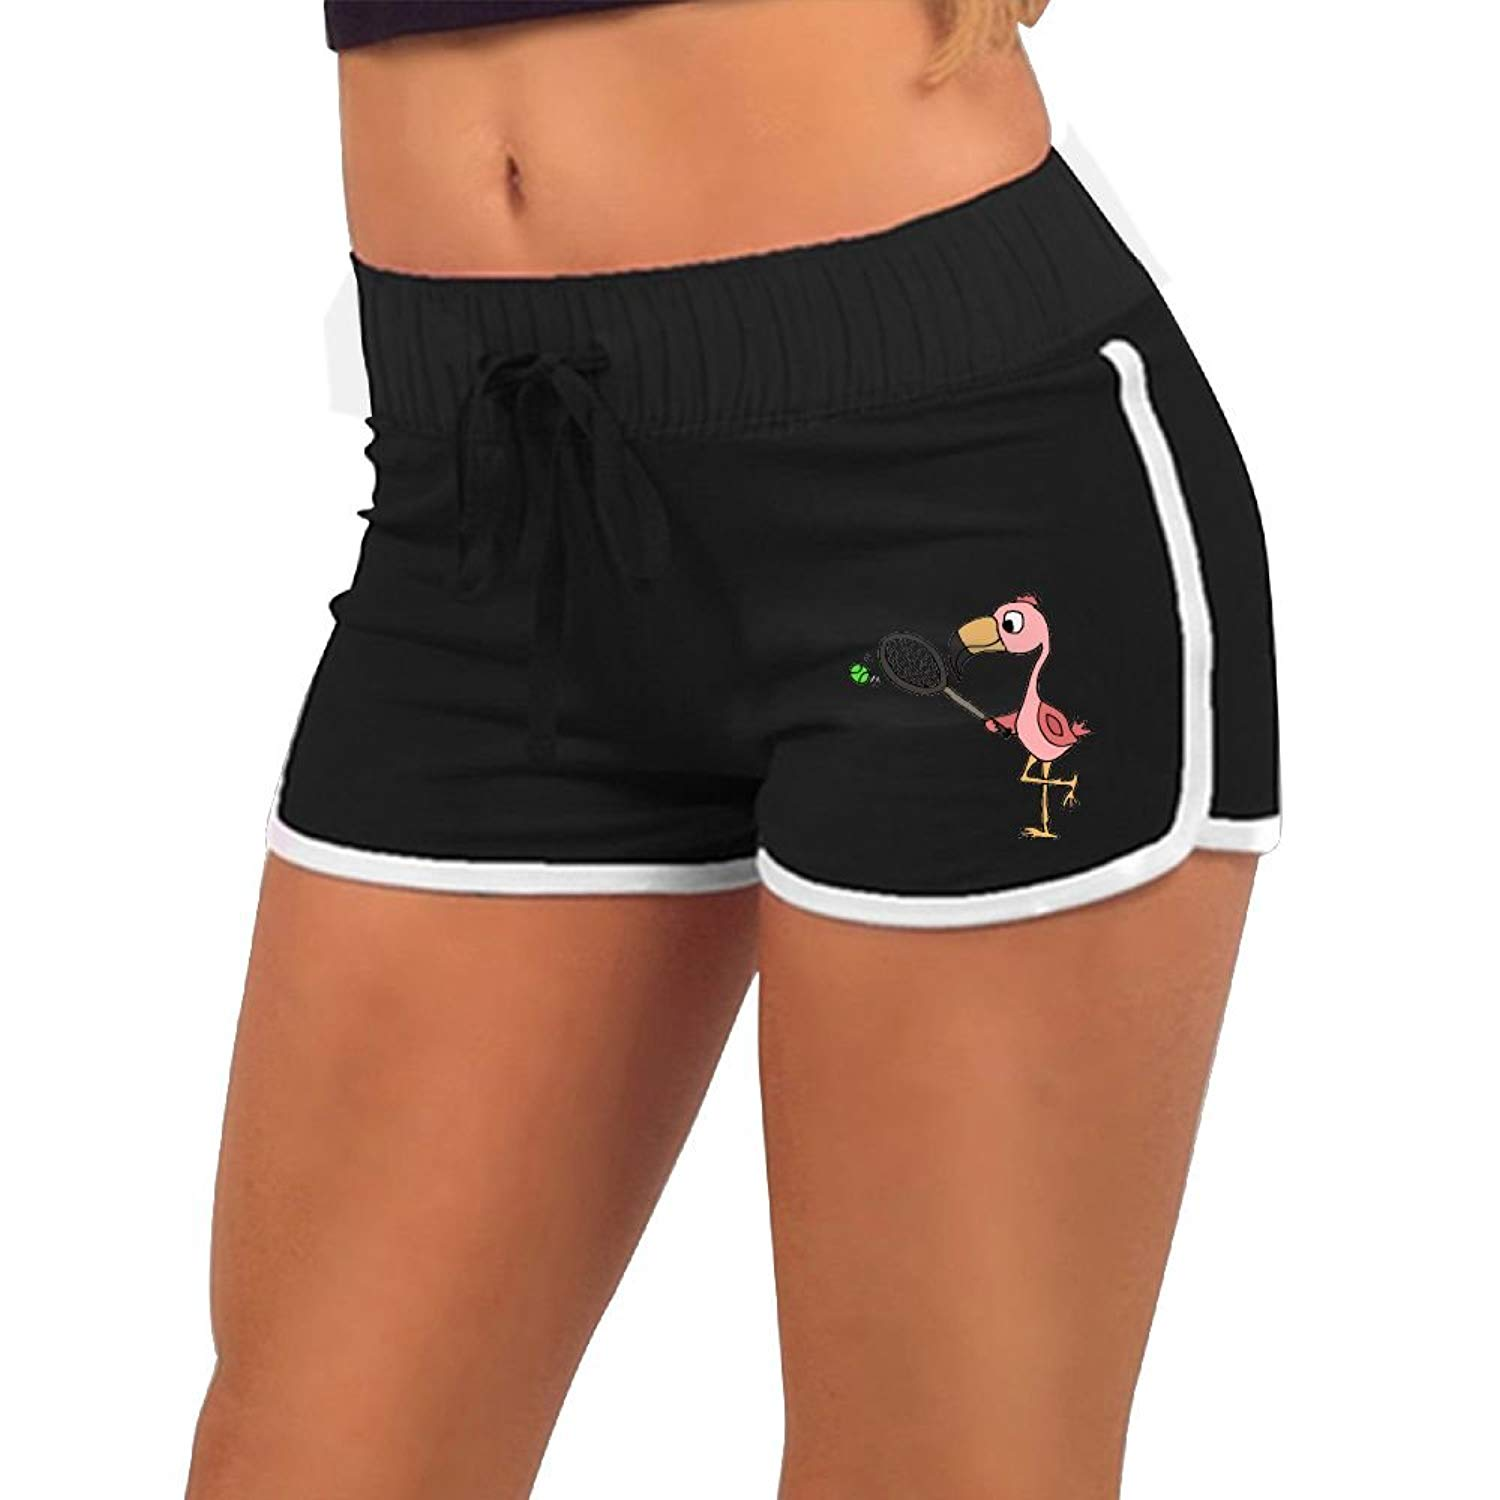 caa6a8dc13ca2 Get Quotations · HUANGLING Funny Pink Flamingo Playing Tennis Women's  Summer Casual Hot Pants